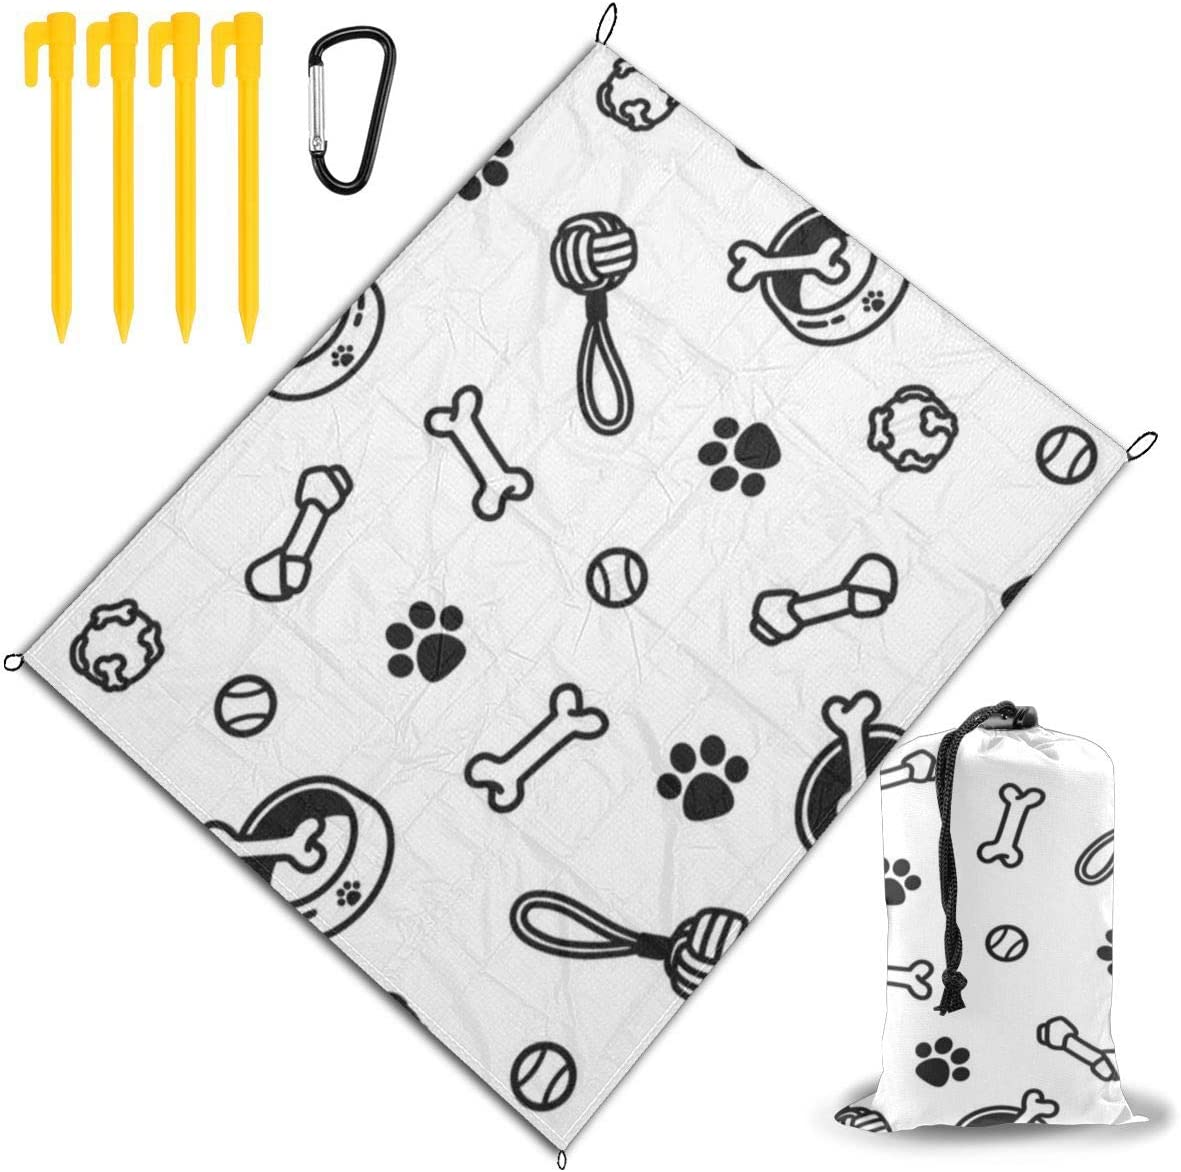 JEKYDOSD Dog Paws Bones Ropes Printed Picnic Mat,Travel Outdoor Beach Blanket Durable Waterproof Sand Beach Mat Blanket for Travel Camping Hiking 67